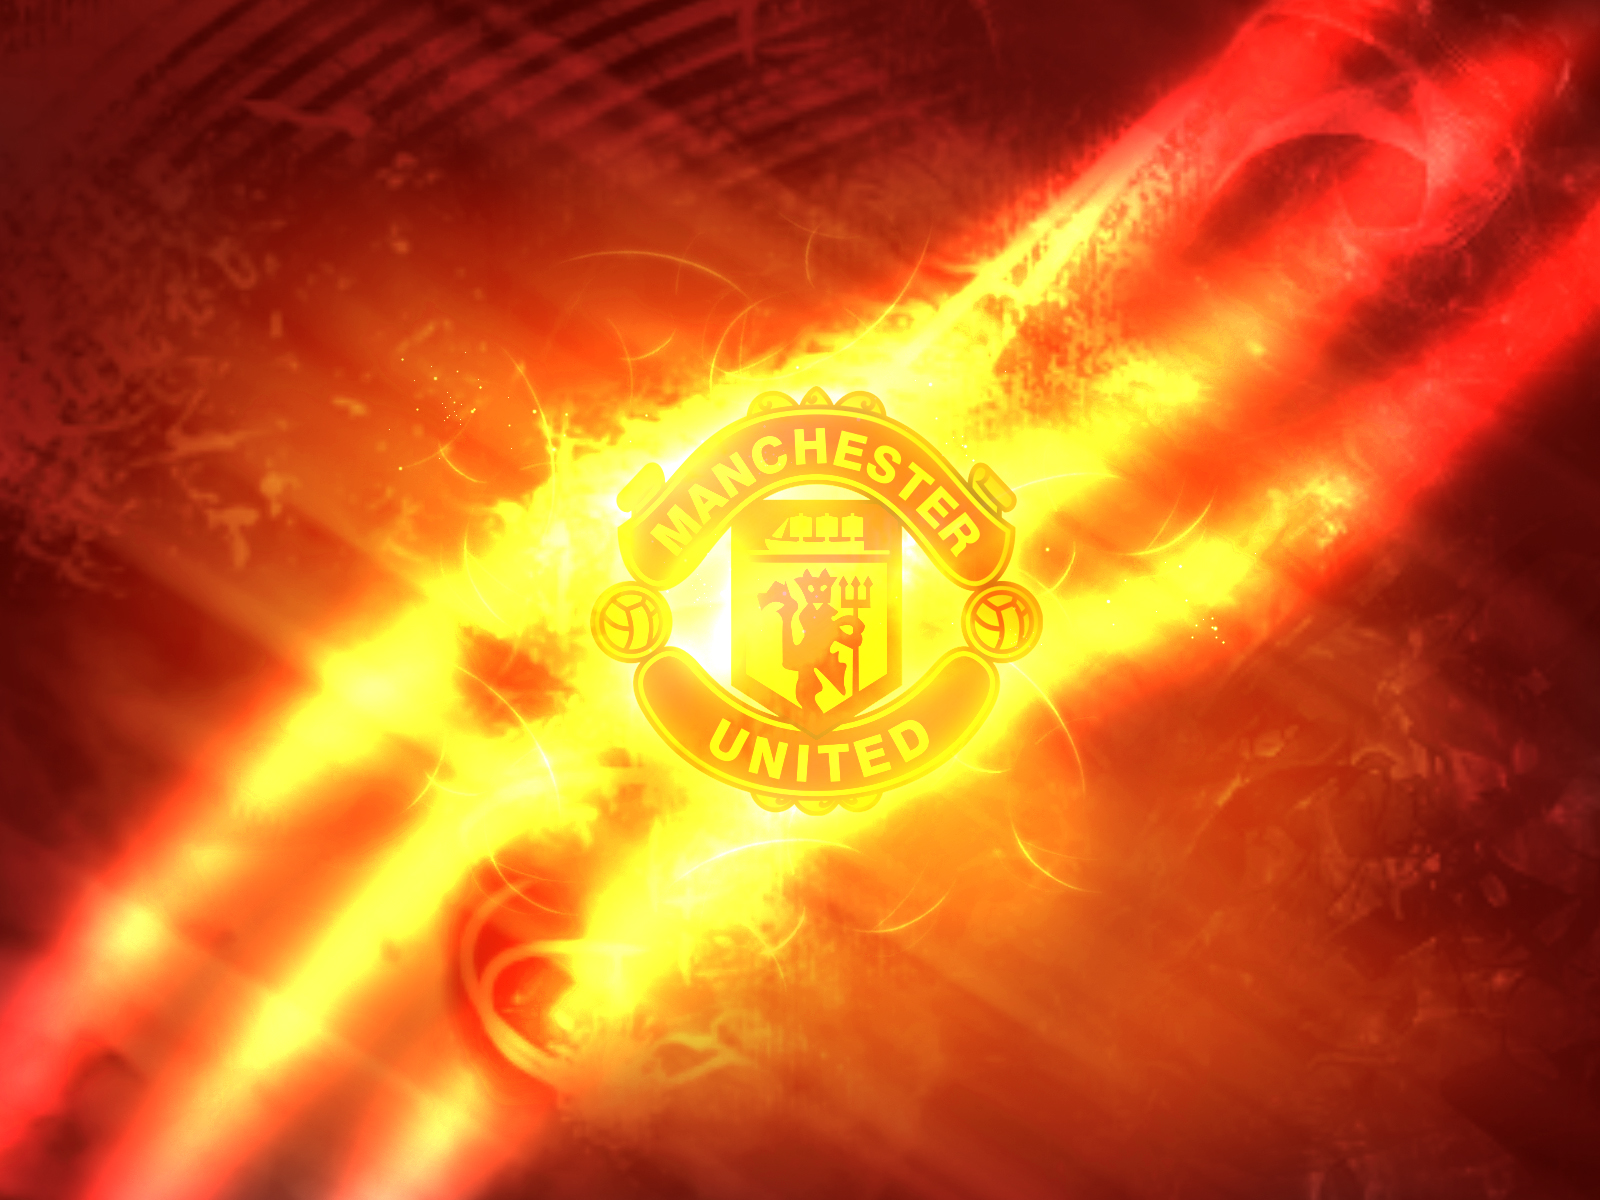 Manchester united logocomputer wallpaper free wallpaper downloads manchester united logo voltagebd Images